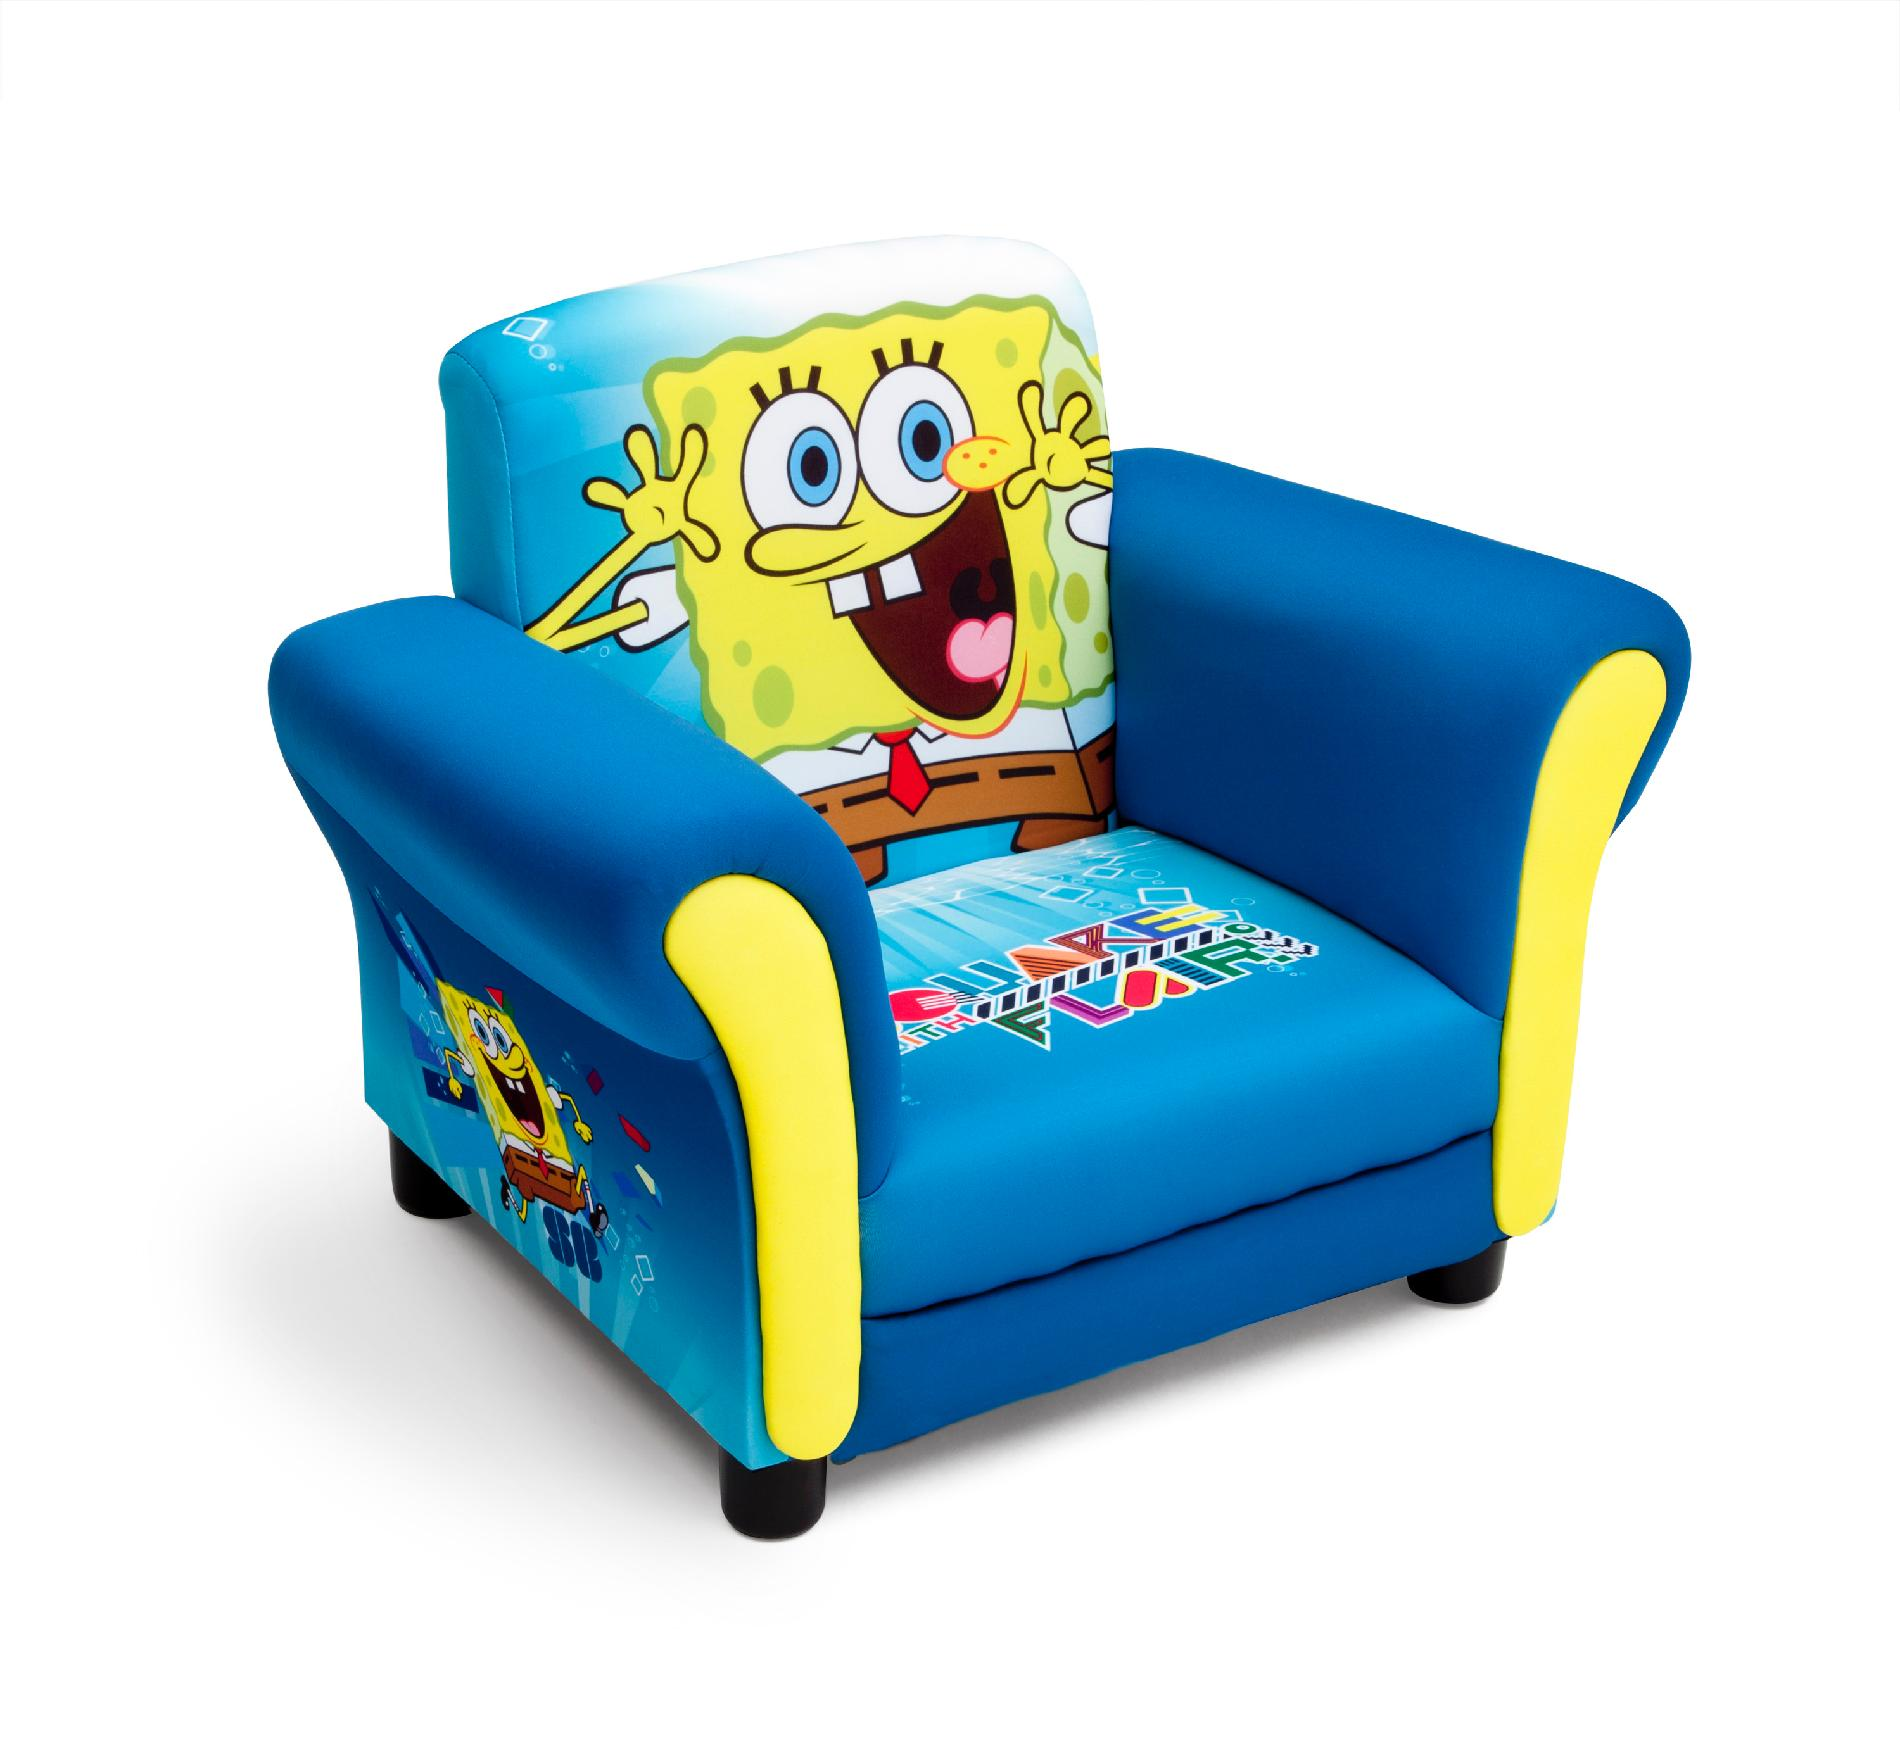 Kids Upholstered Chair Delta Children Spongebob Upholstered Chair Baby